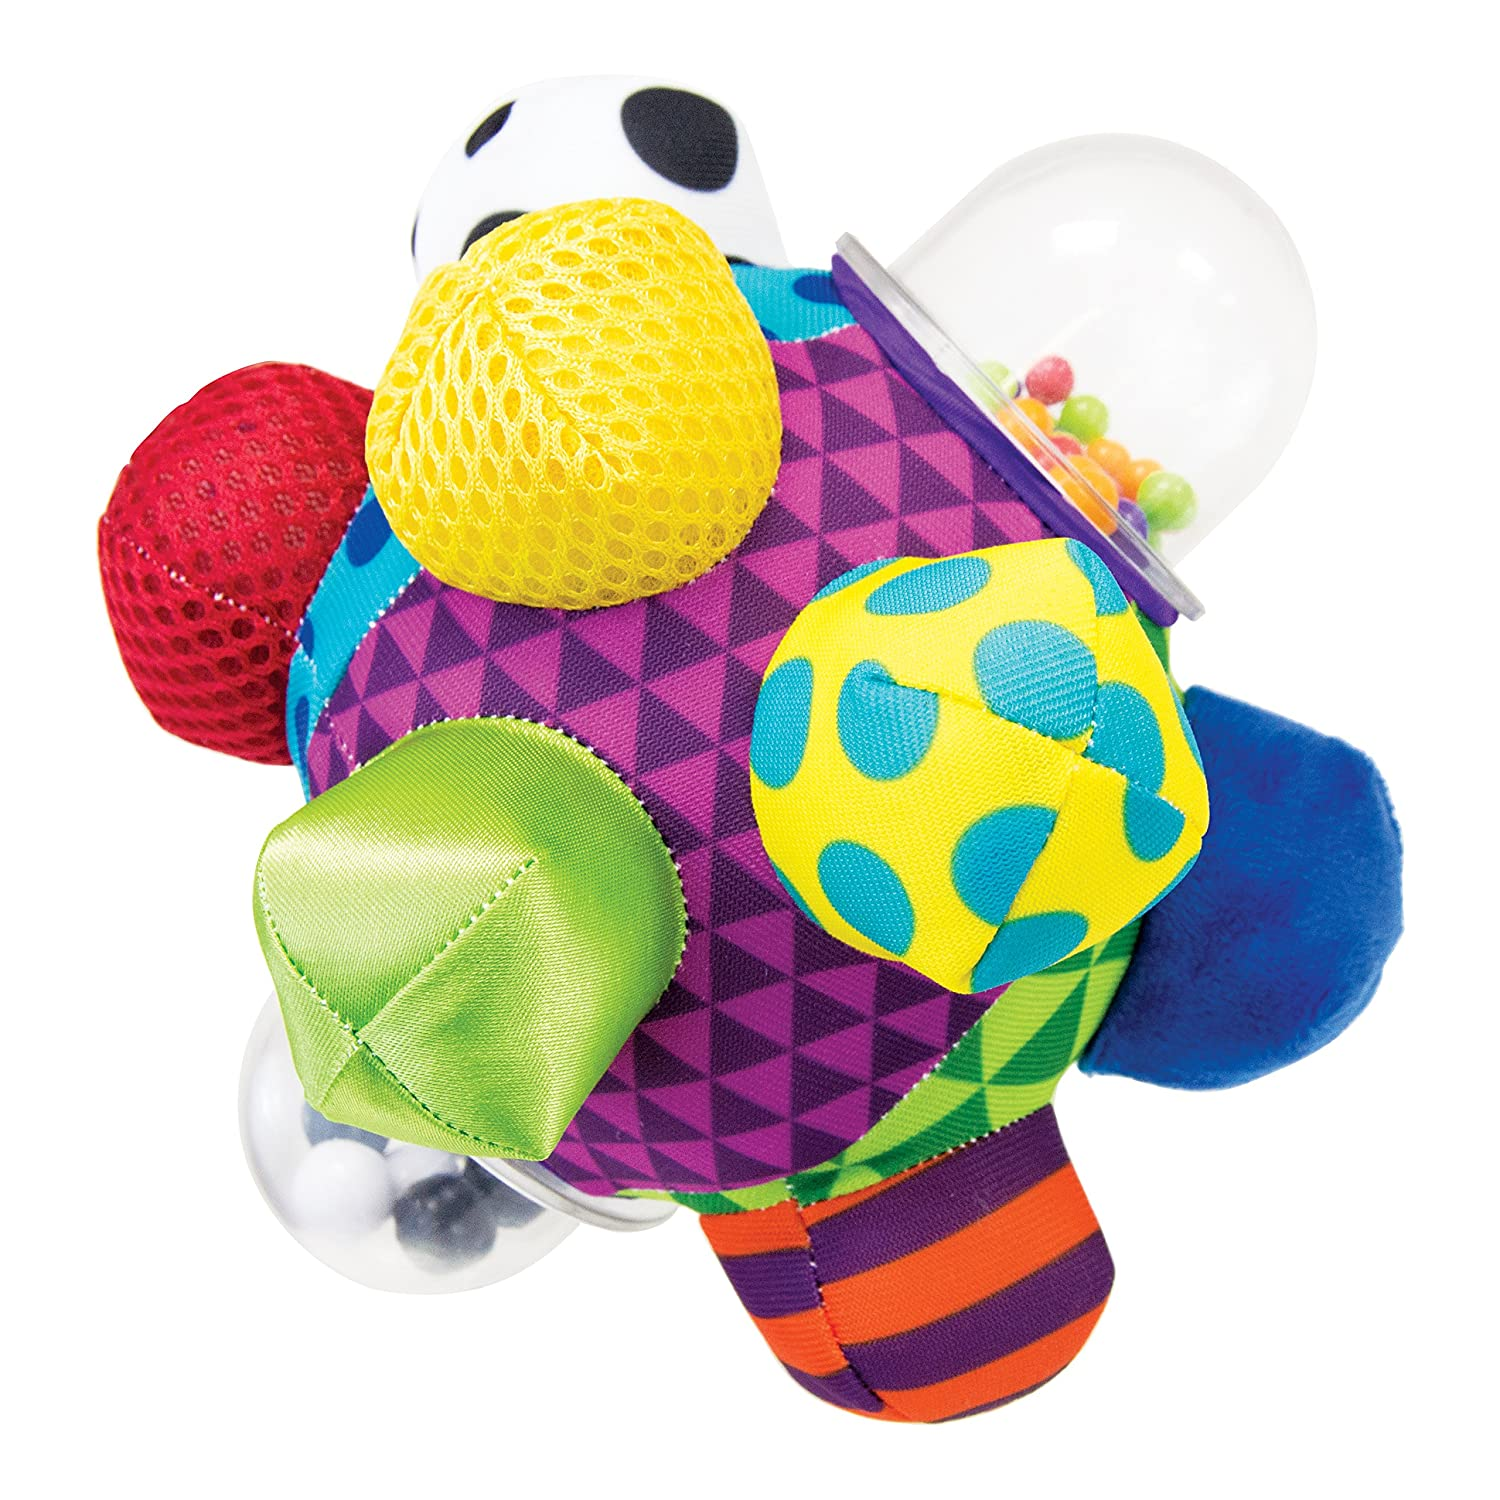 Amazon Sassy Developmental Bumpy Ball Baby